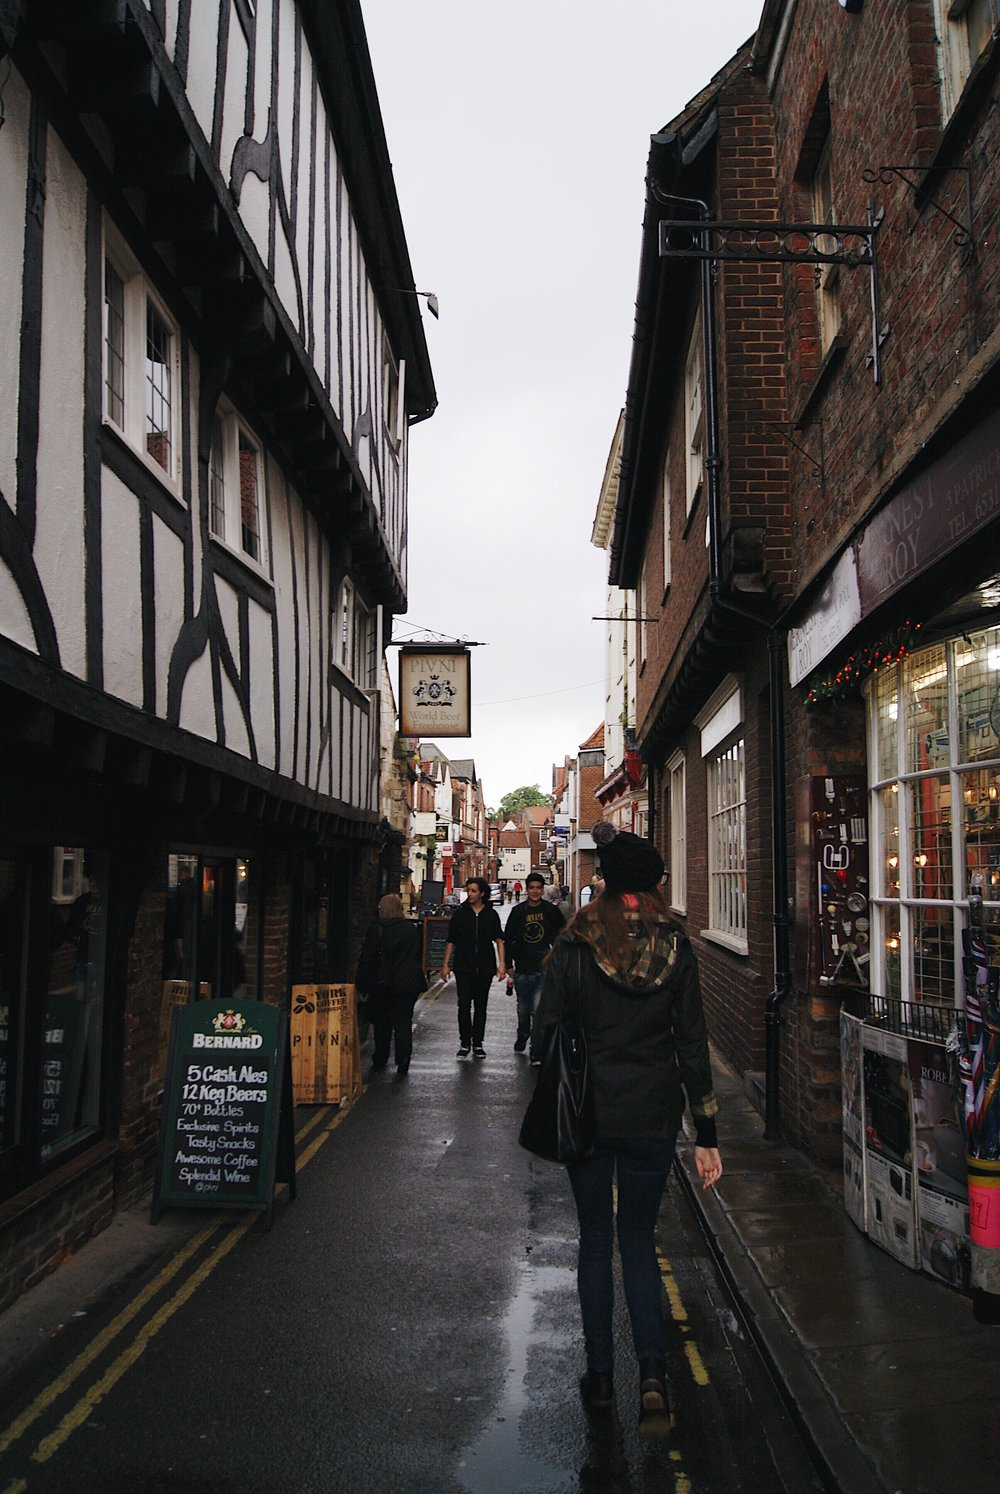 Eve wandering the Shambles